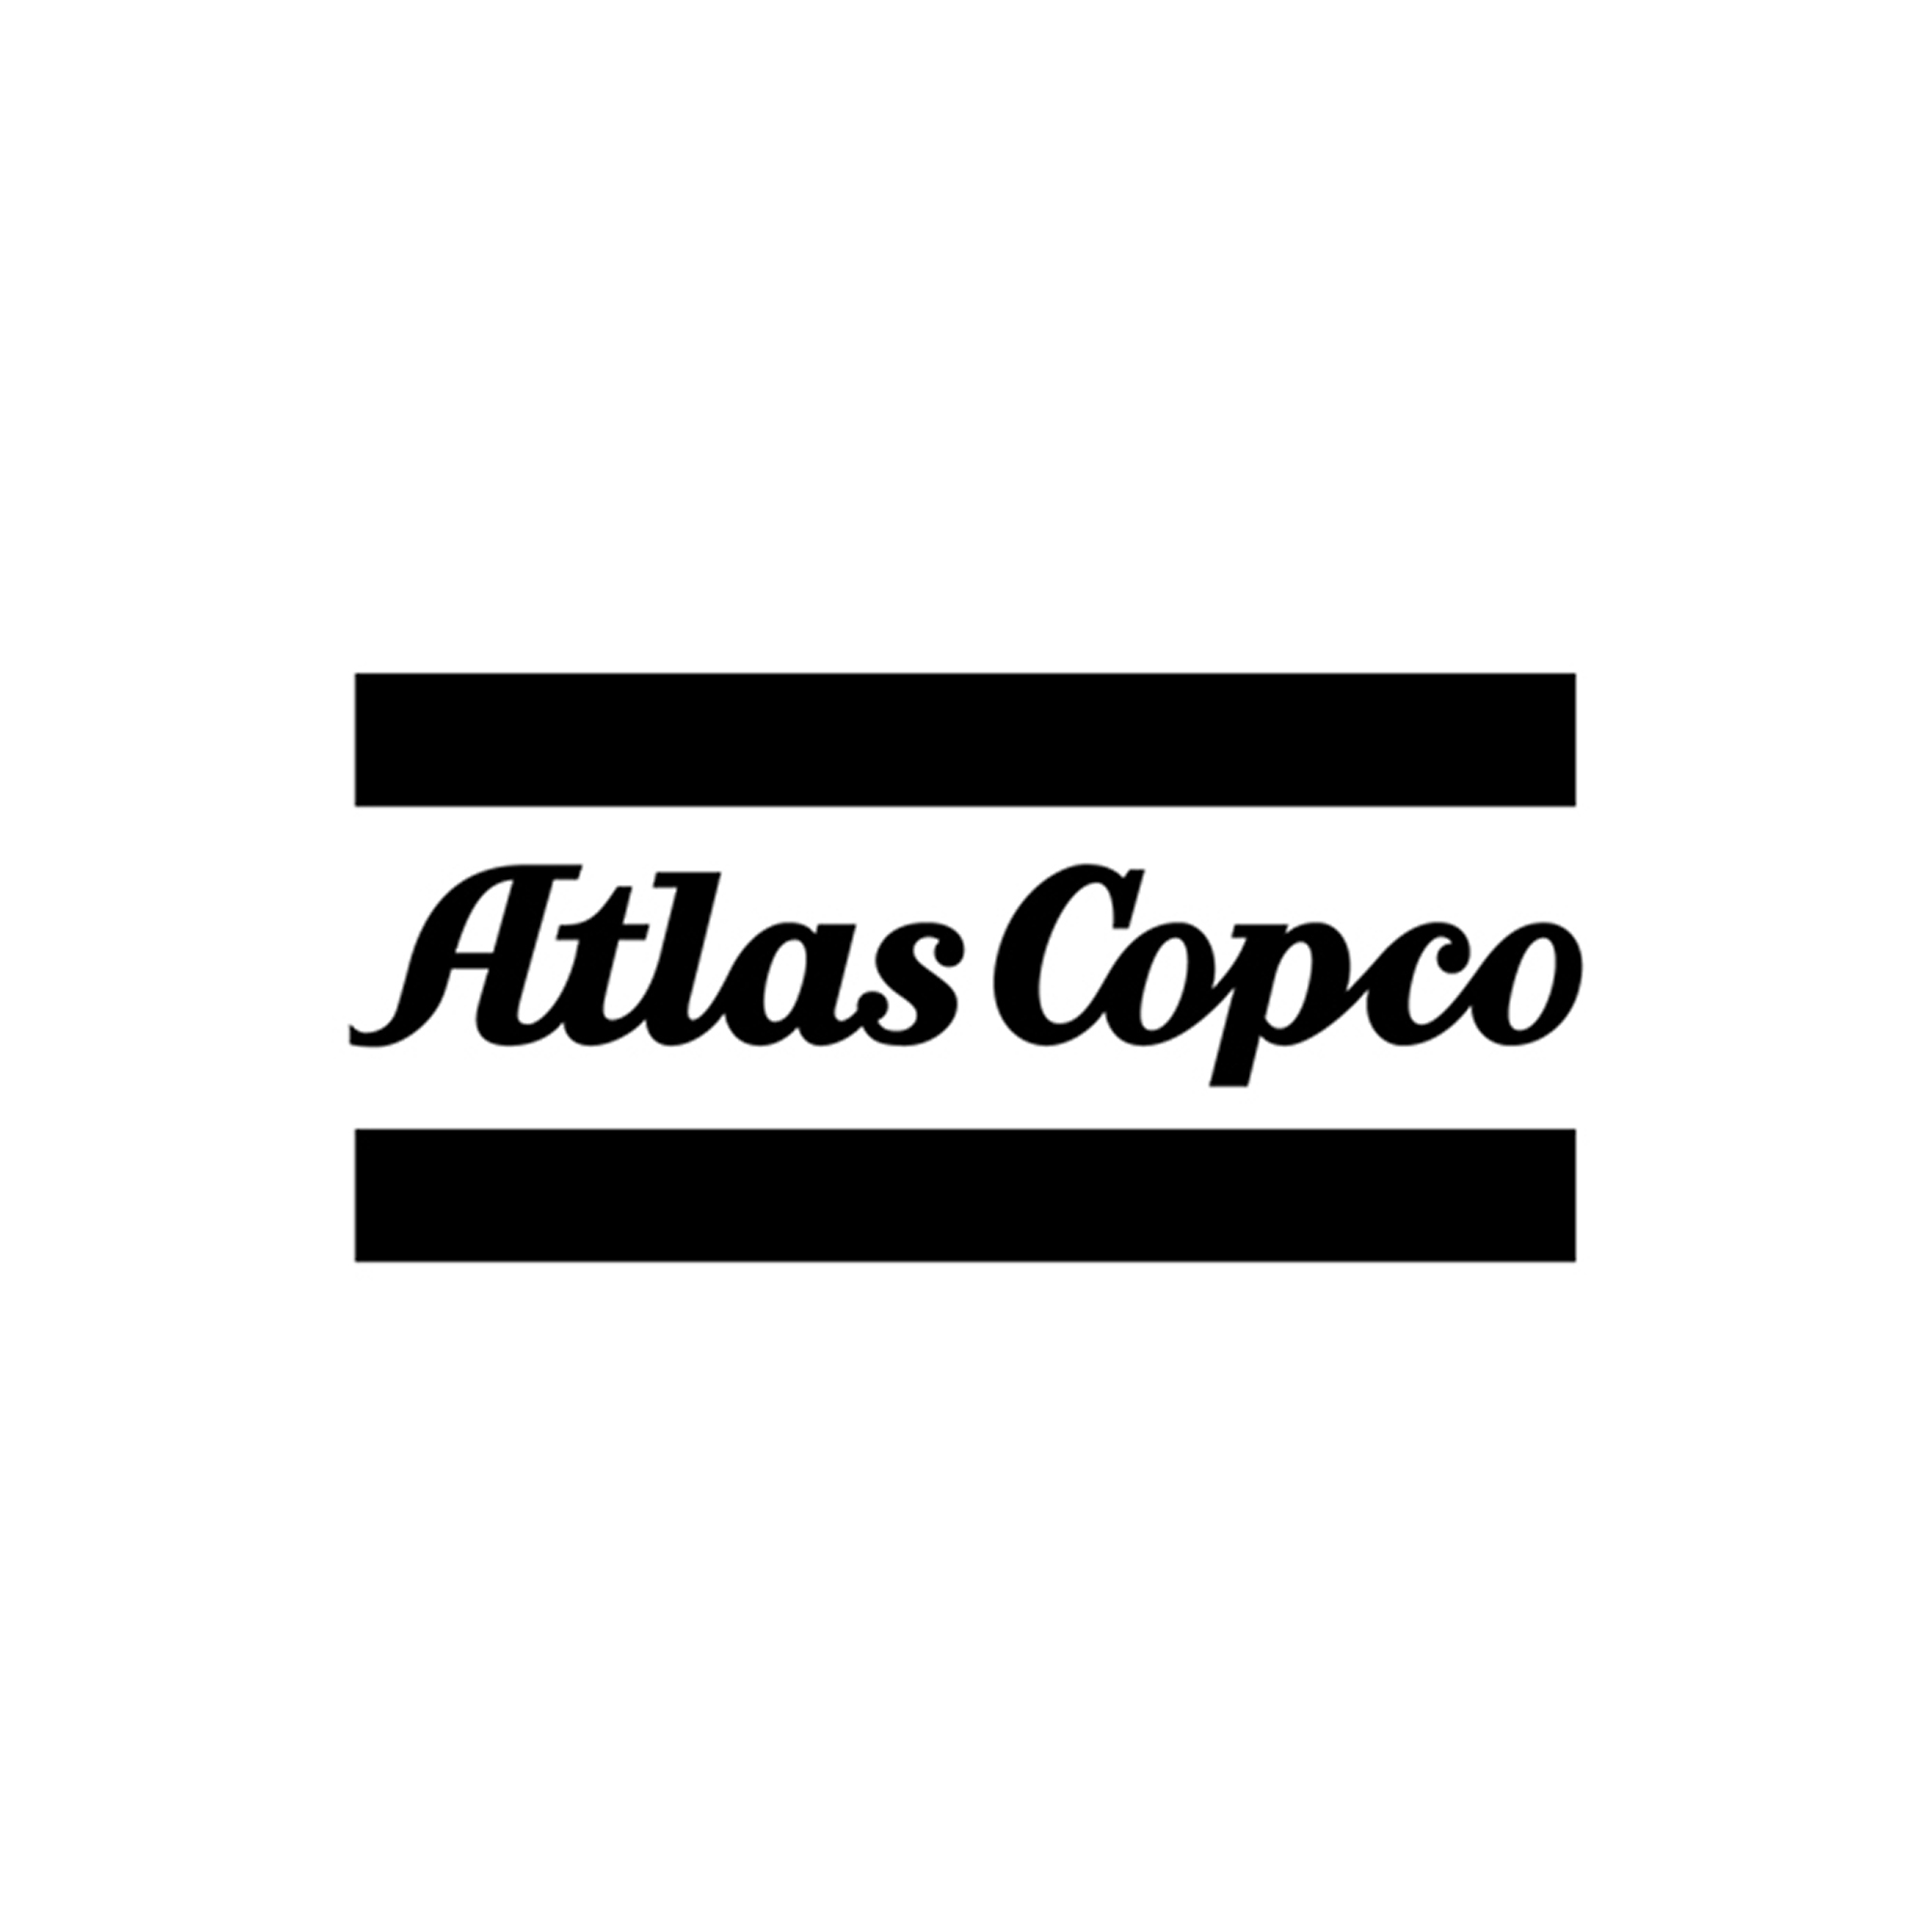 Laser cut Atlas Copco decal. Often used when branding cars, front desks and other areas where your logo shall be seen